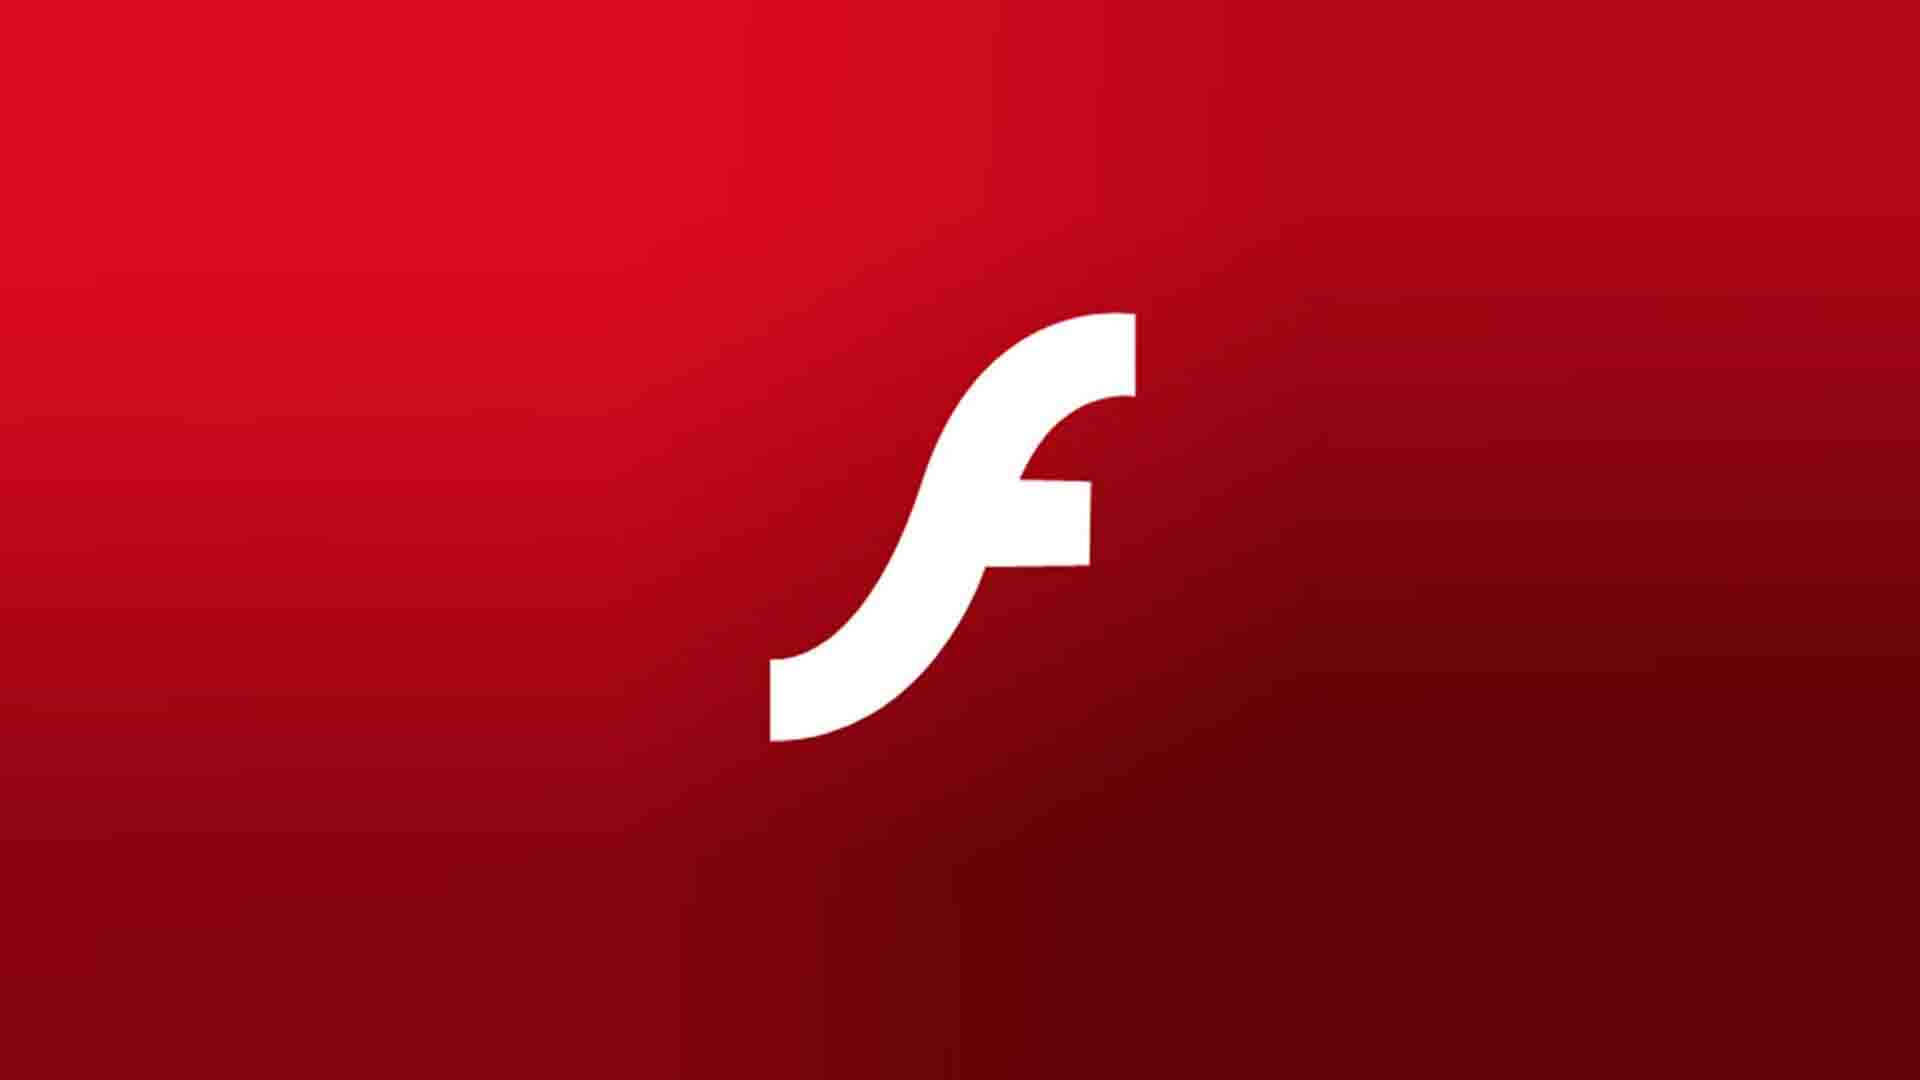 Adobe-Flash-Player-Progarm